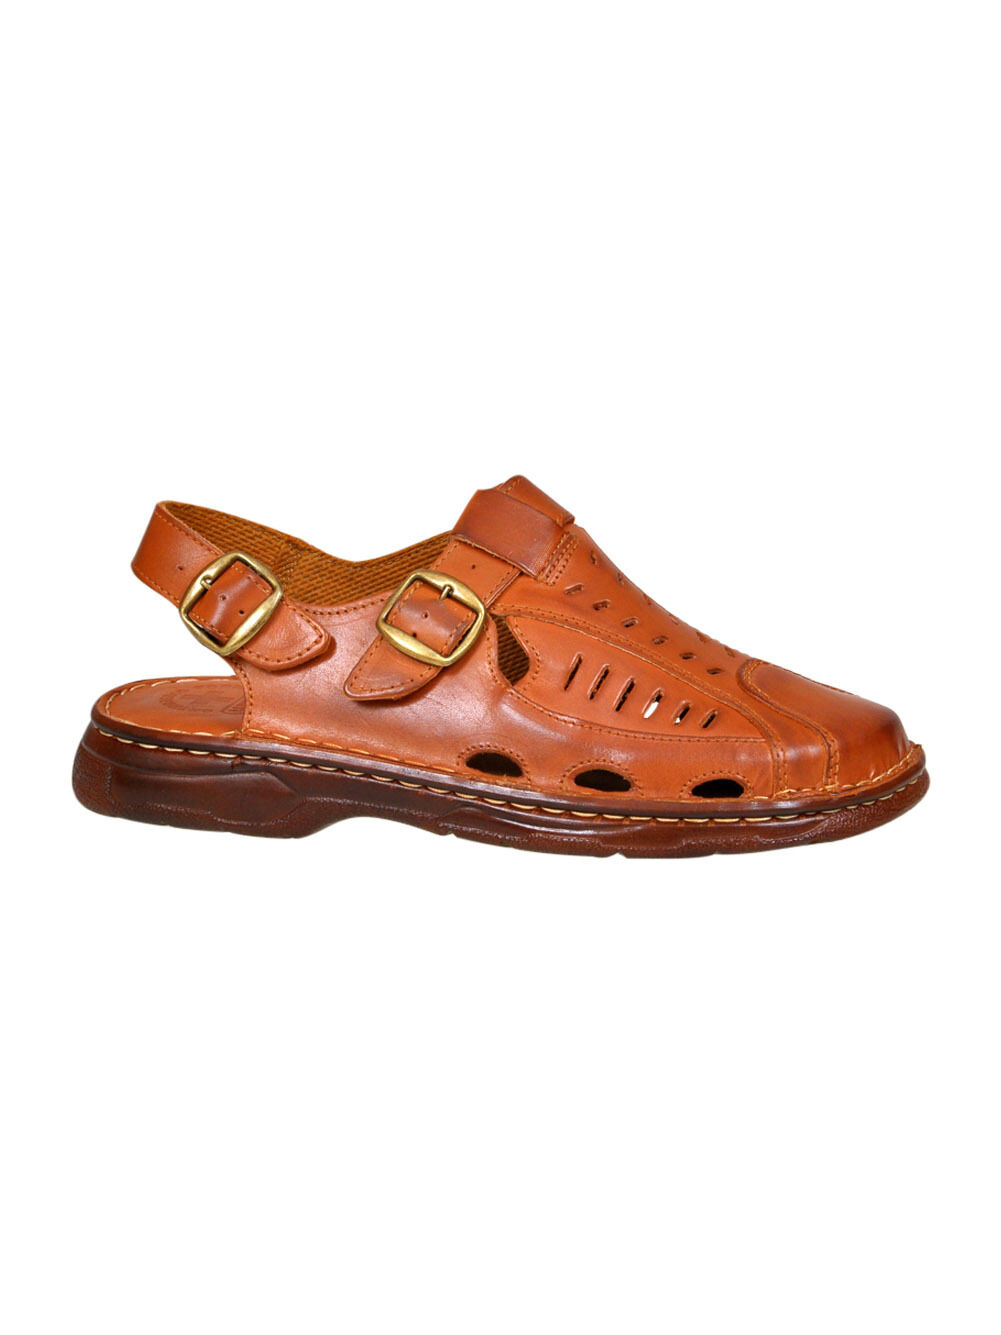 New Natural Buffalo Leather Slip On Sandals Shoes for Men UK Size 7 8 9 10 11